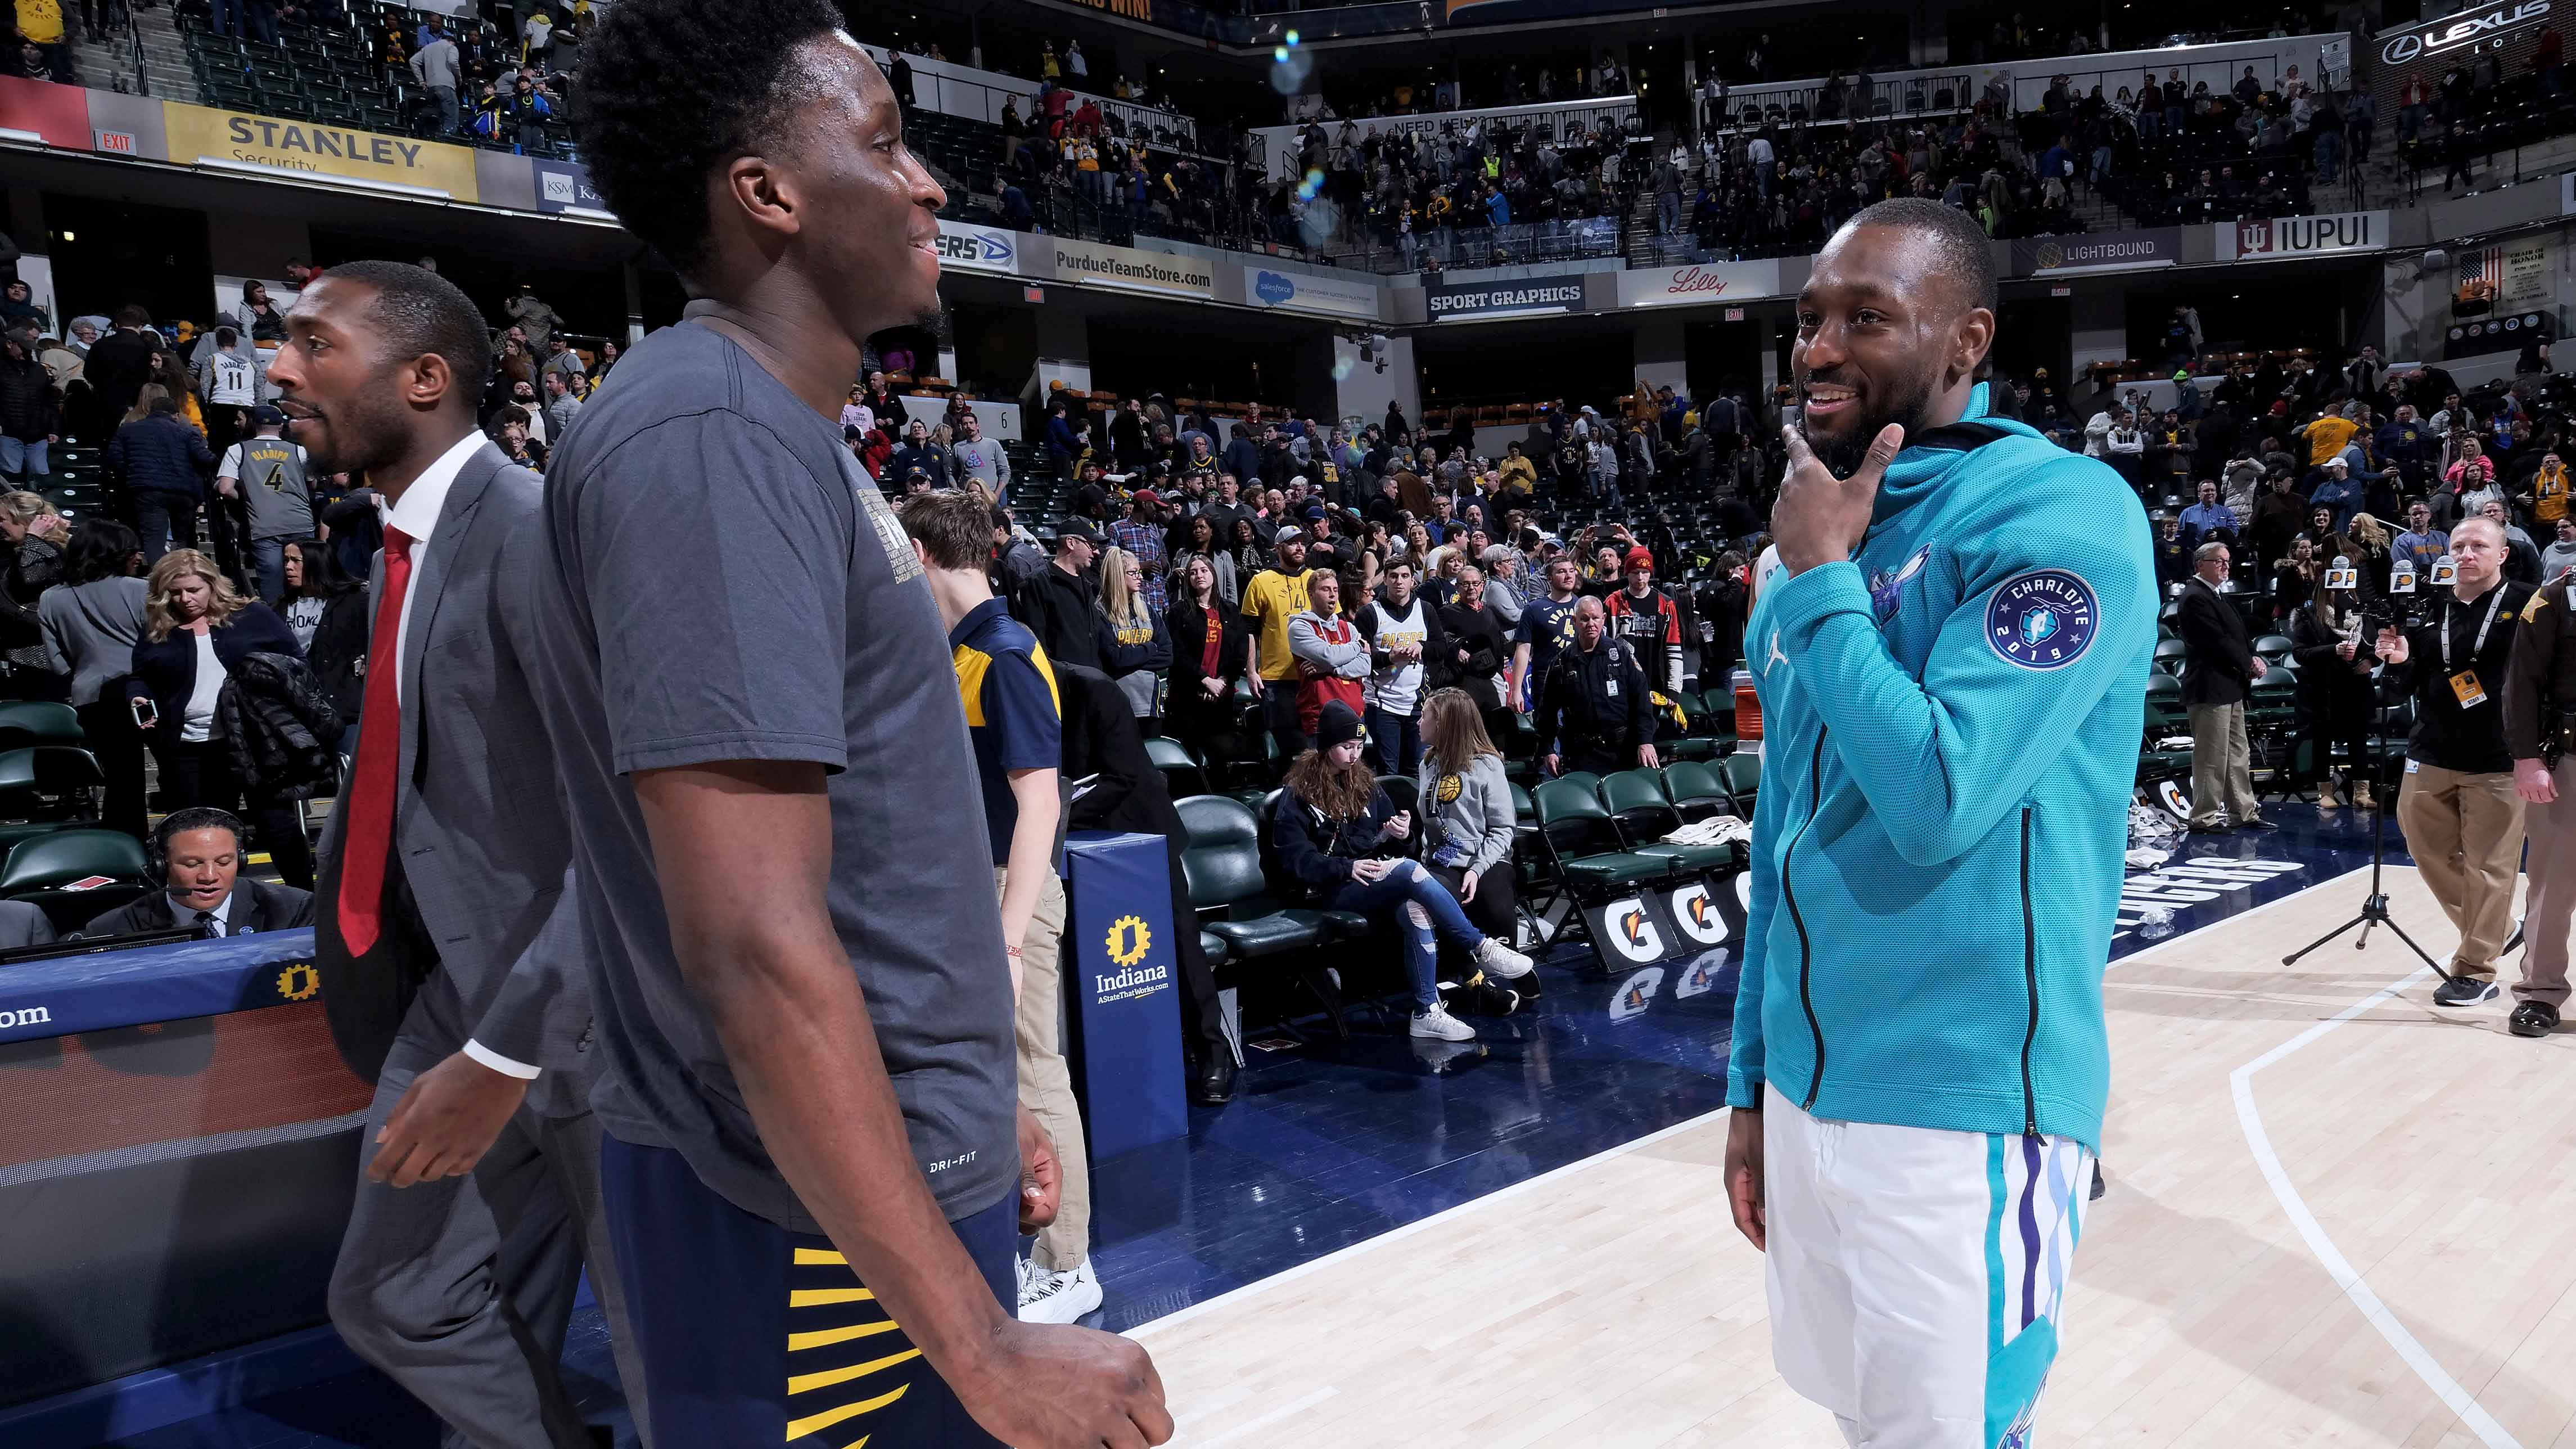 GAME RECAP: Pacers 120, Hornets 95